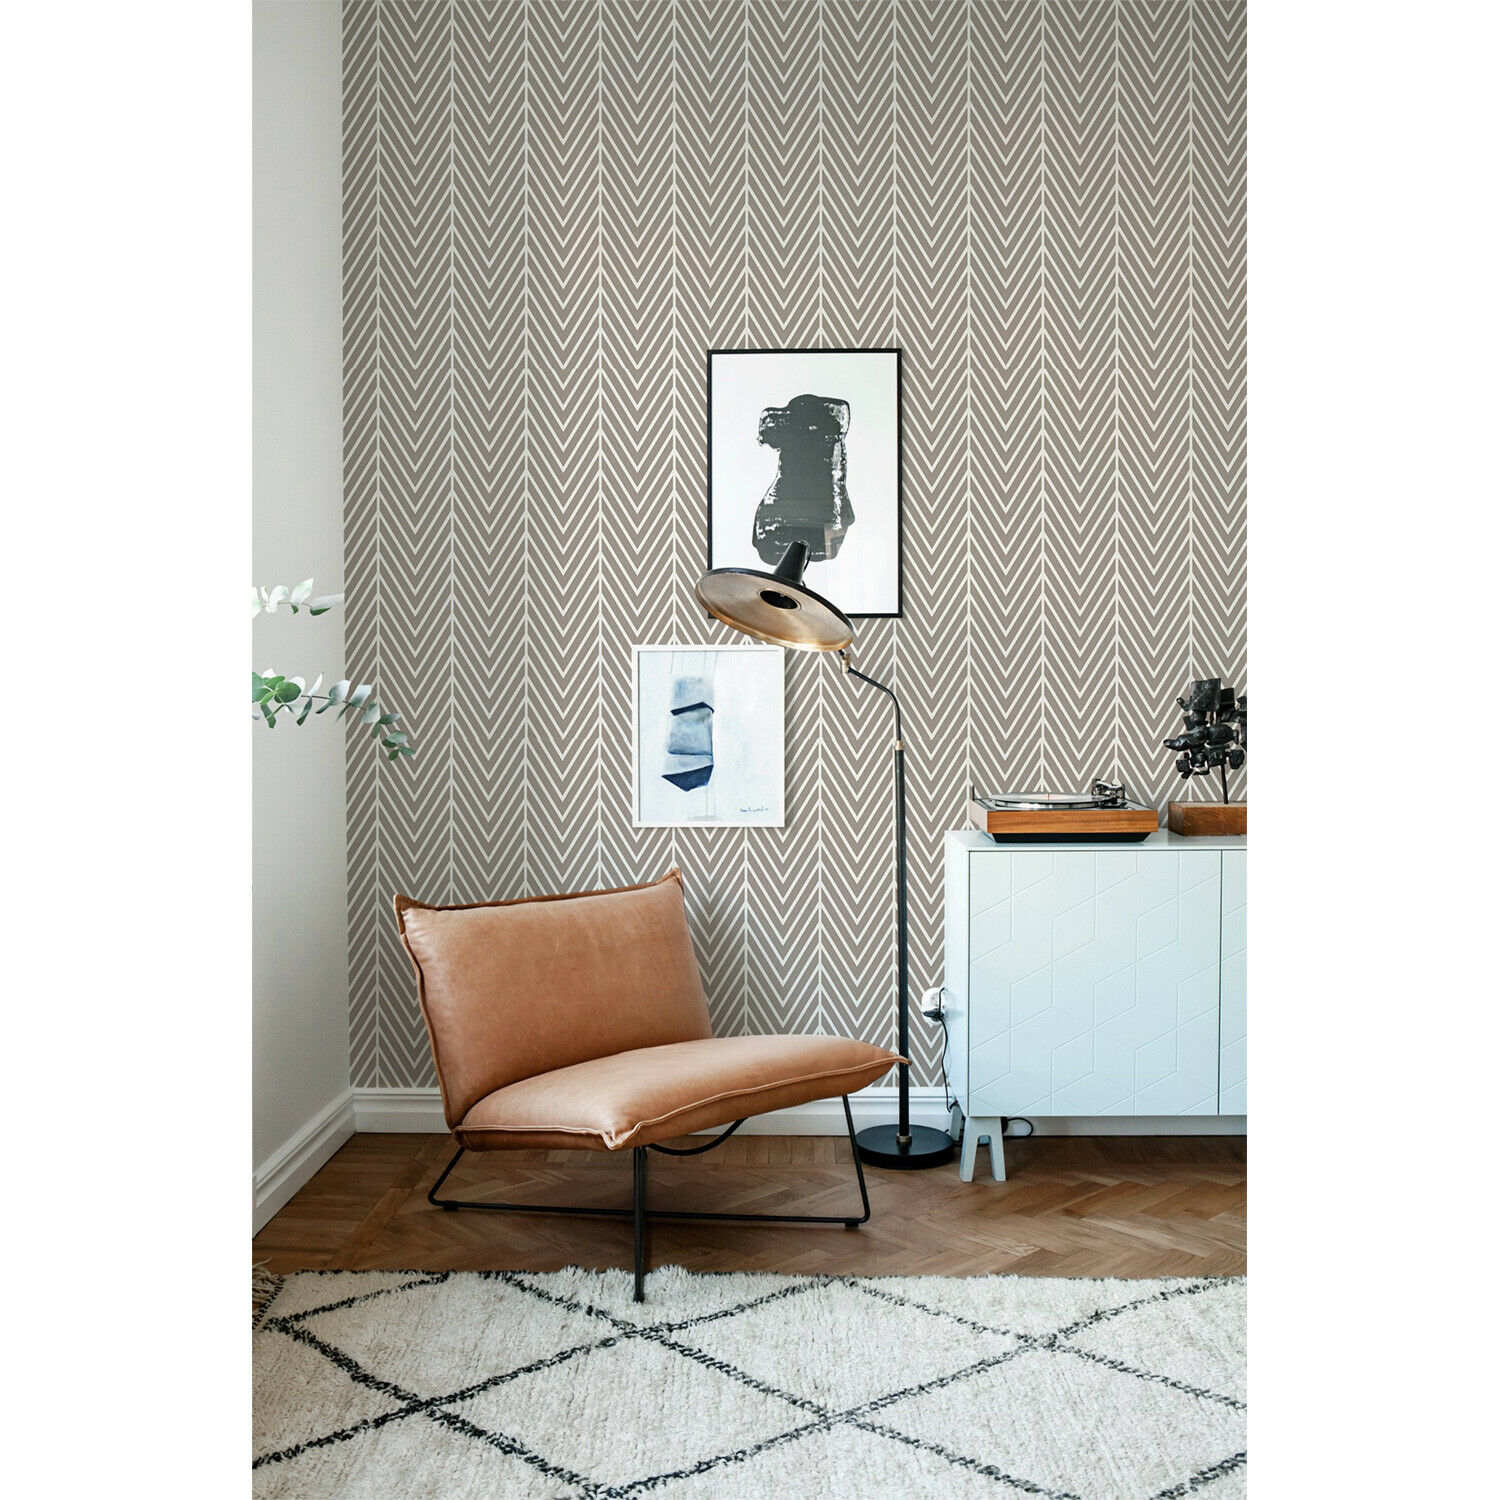 Latte Herringbone Non-Woven wallpaper Simple wall mural Geometric Home decor